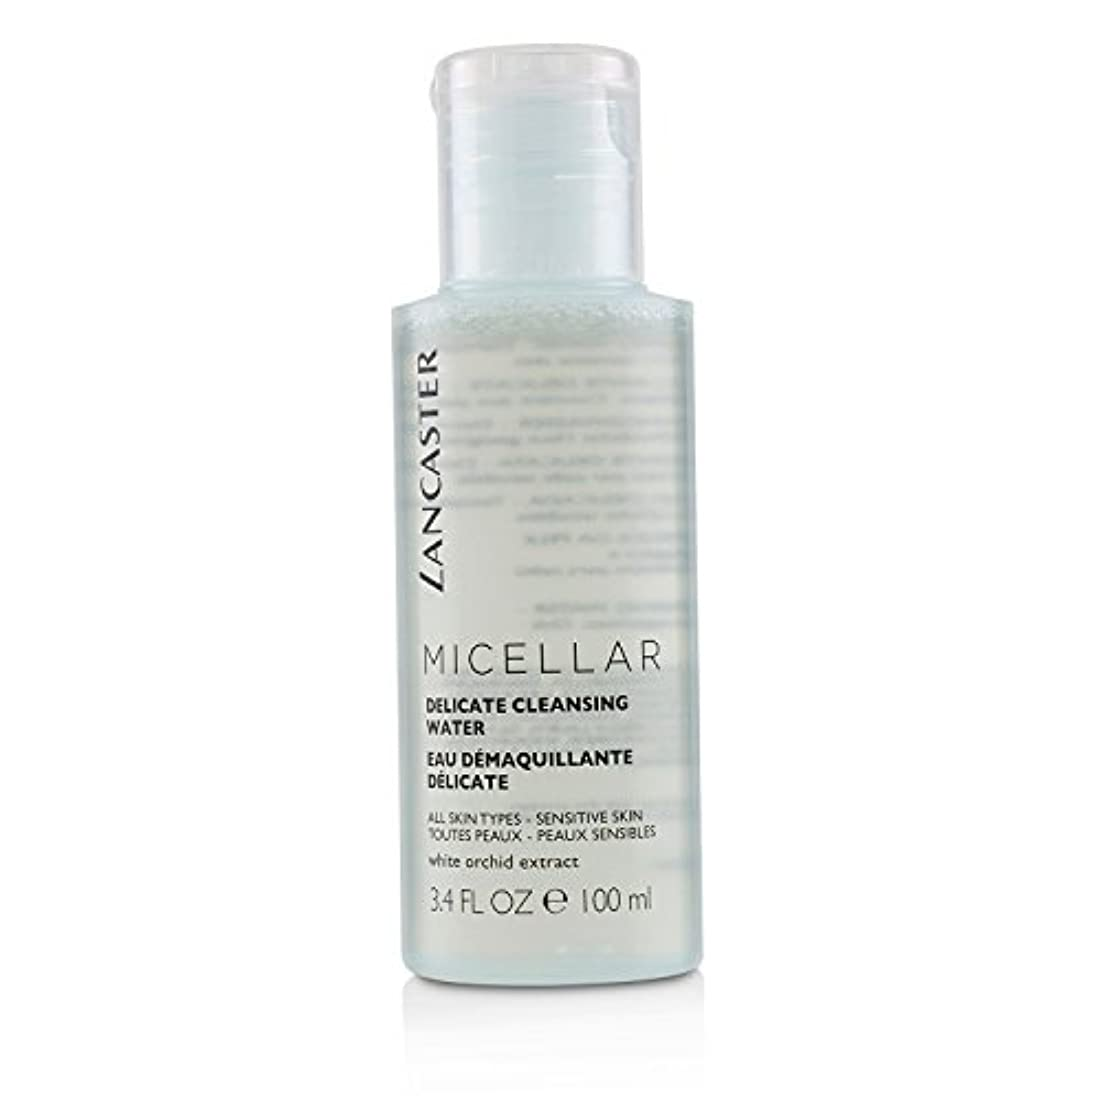 結婚航海のお別れランカスター Micellar Delicate Cleansing Water - All Skin Types, Including Sensitive Skin 100ml/3.4oz並行輸入品